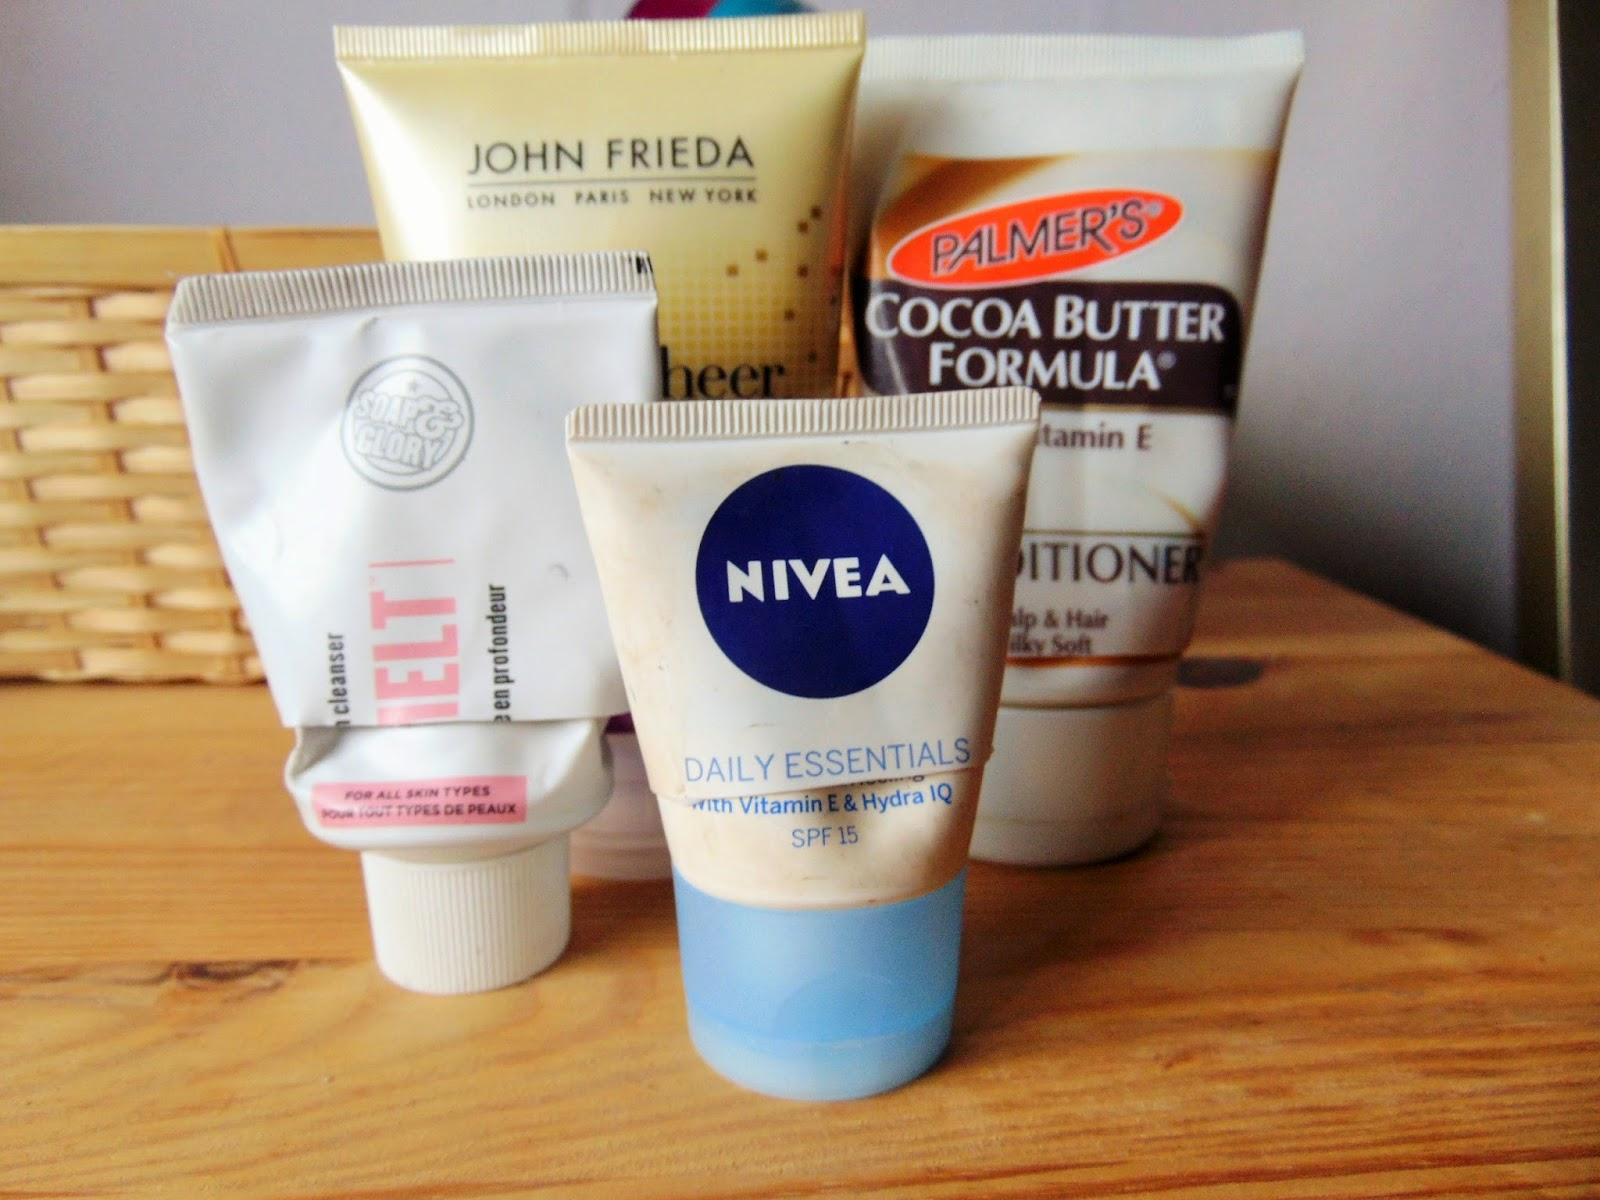 tip of the week how not to waste product nivea soap and glory john frieda palmers cocoa butter formula